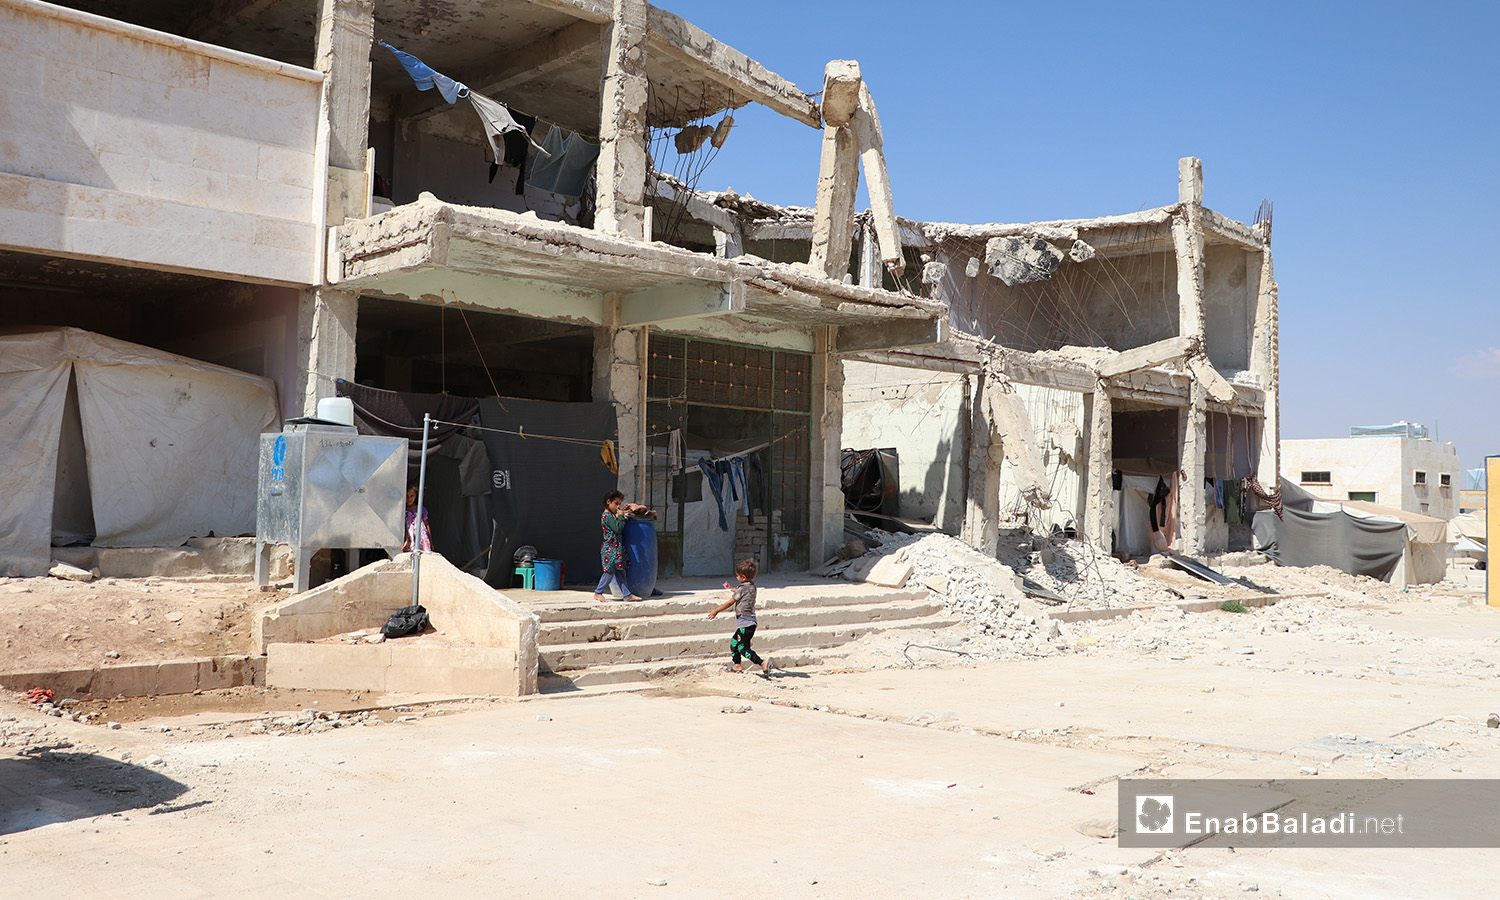 A destroyed building used by internally displaced people (IDPs) in Qibtan Camp near Akhtarin town in northern Aleppo countryside – 17 July 2020 (Enab Baladi / Asim Melhem)